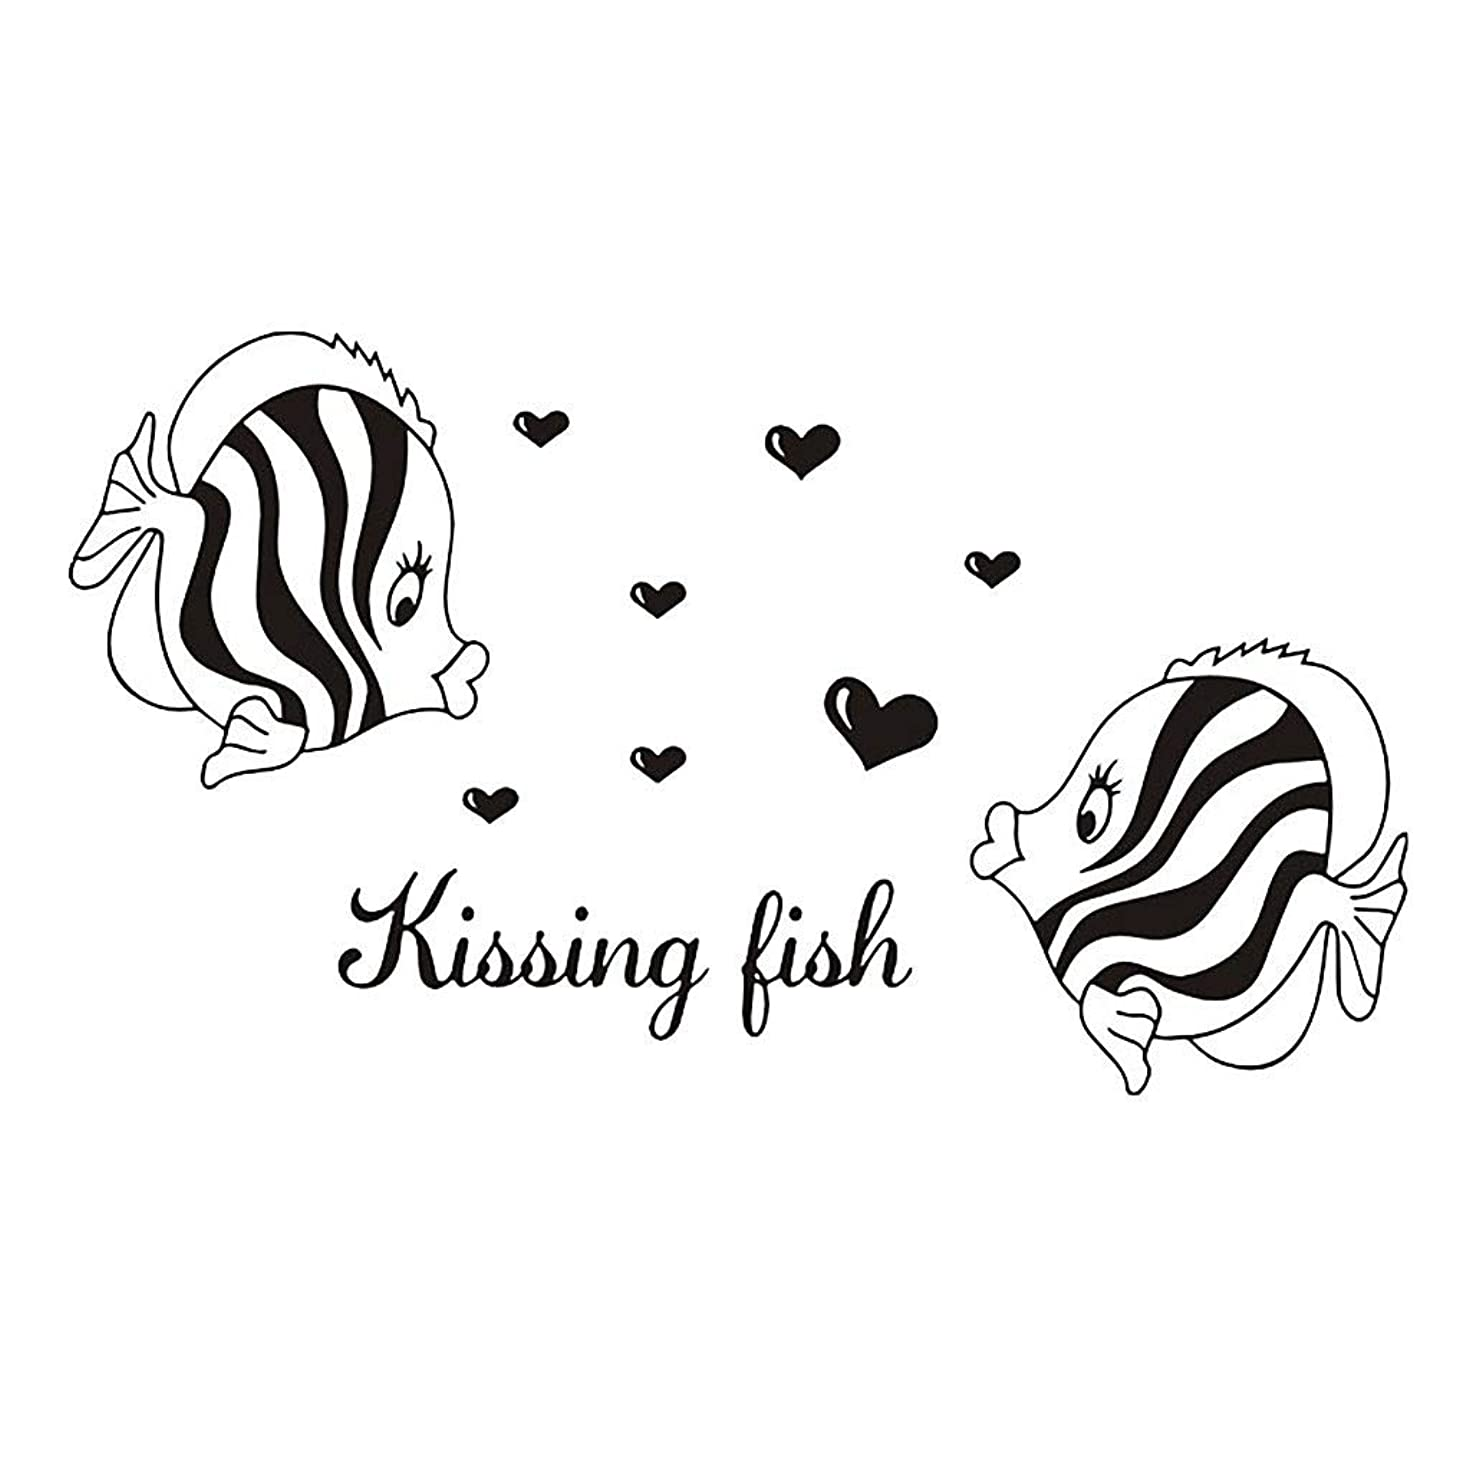 Yamart Wall Stickers Kissing Fish Wall Sticker PVC Decal Home Bedroom Living Room TV Setting Wall Sticker Romance Home Decoration 33x43cm